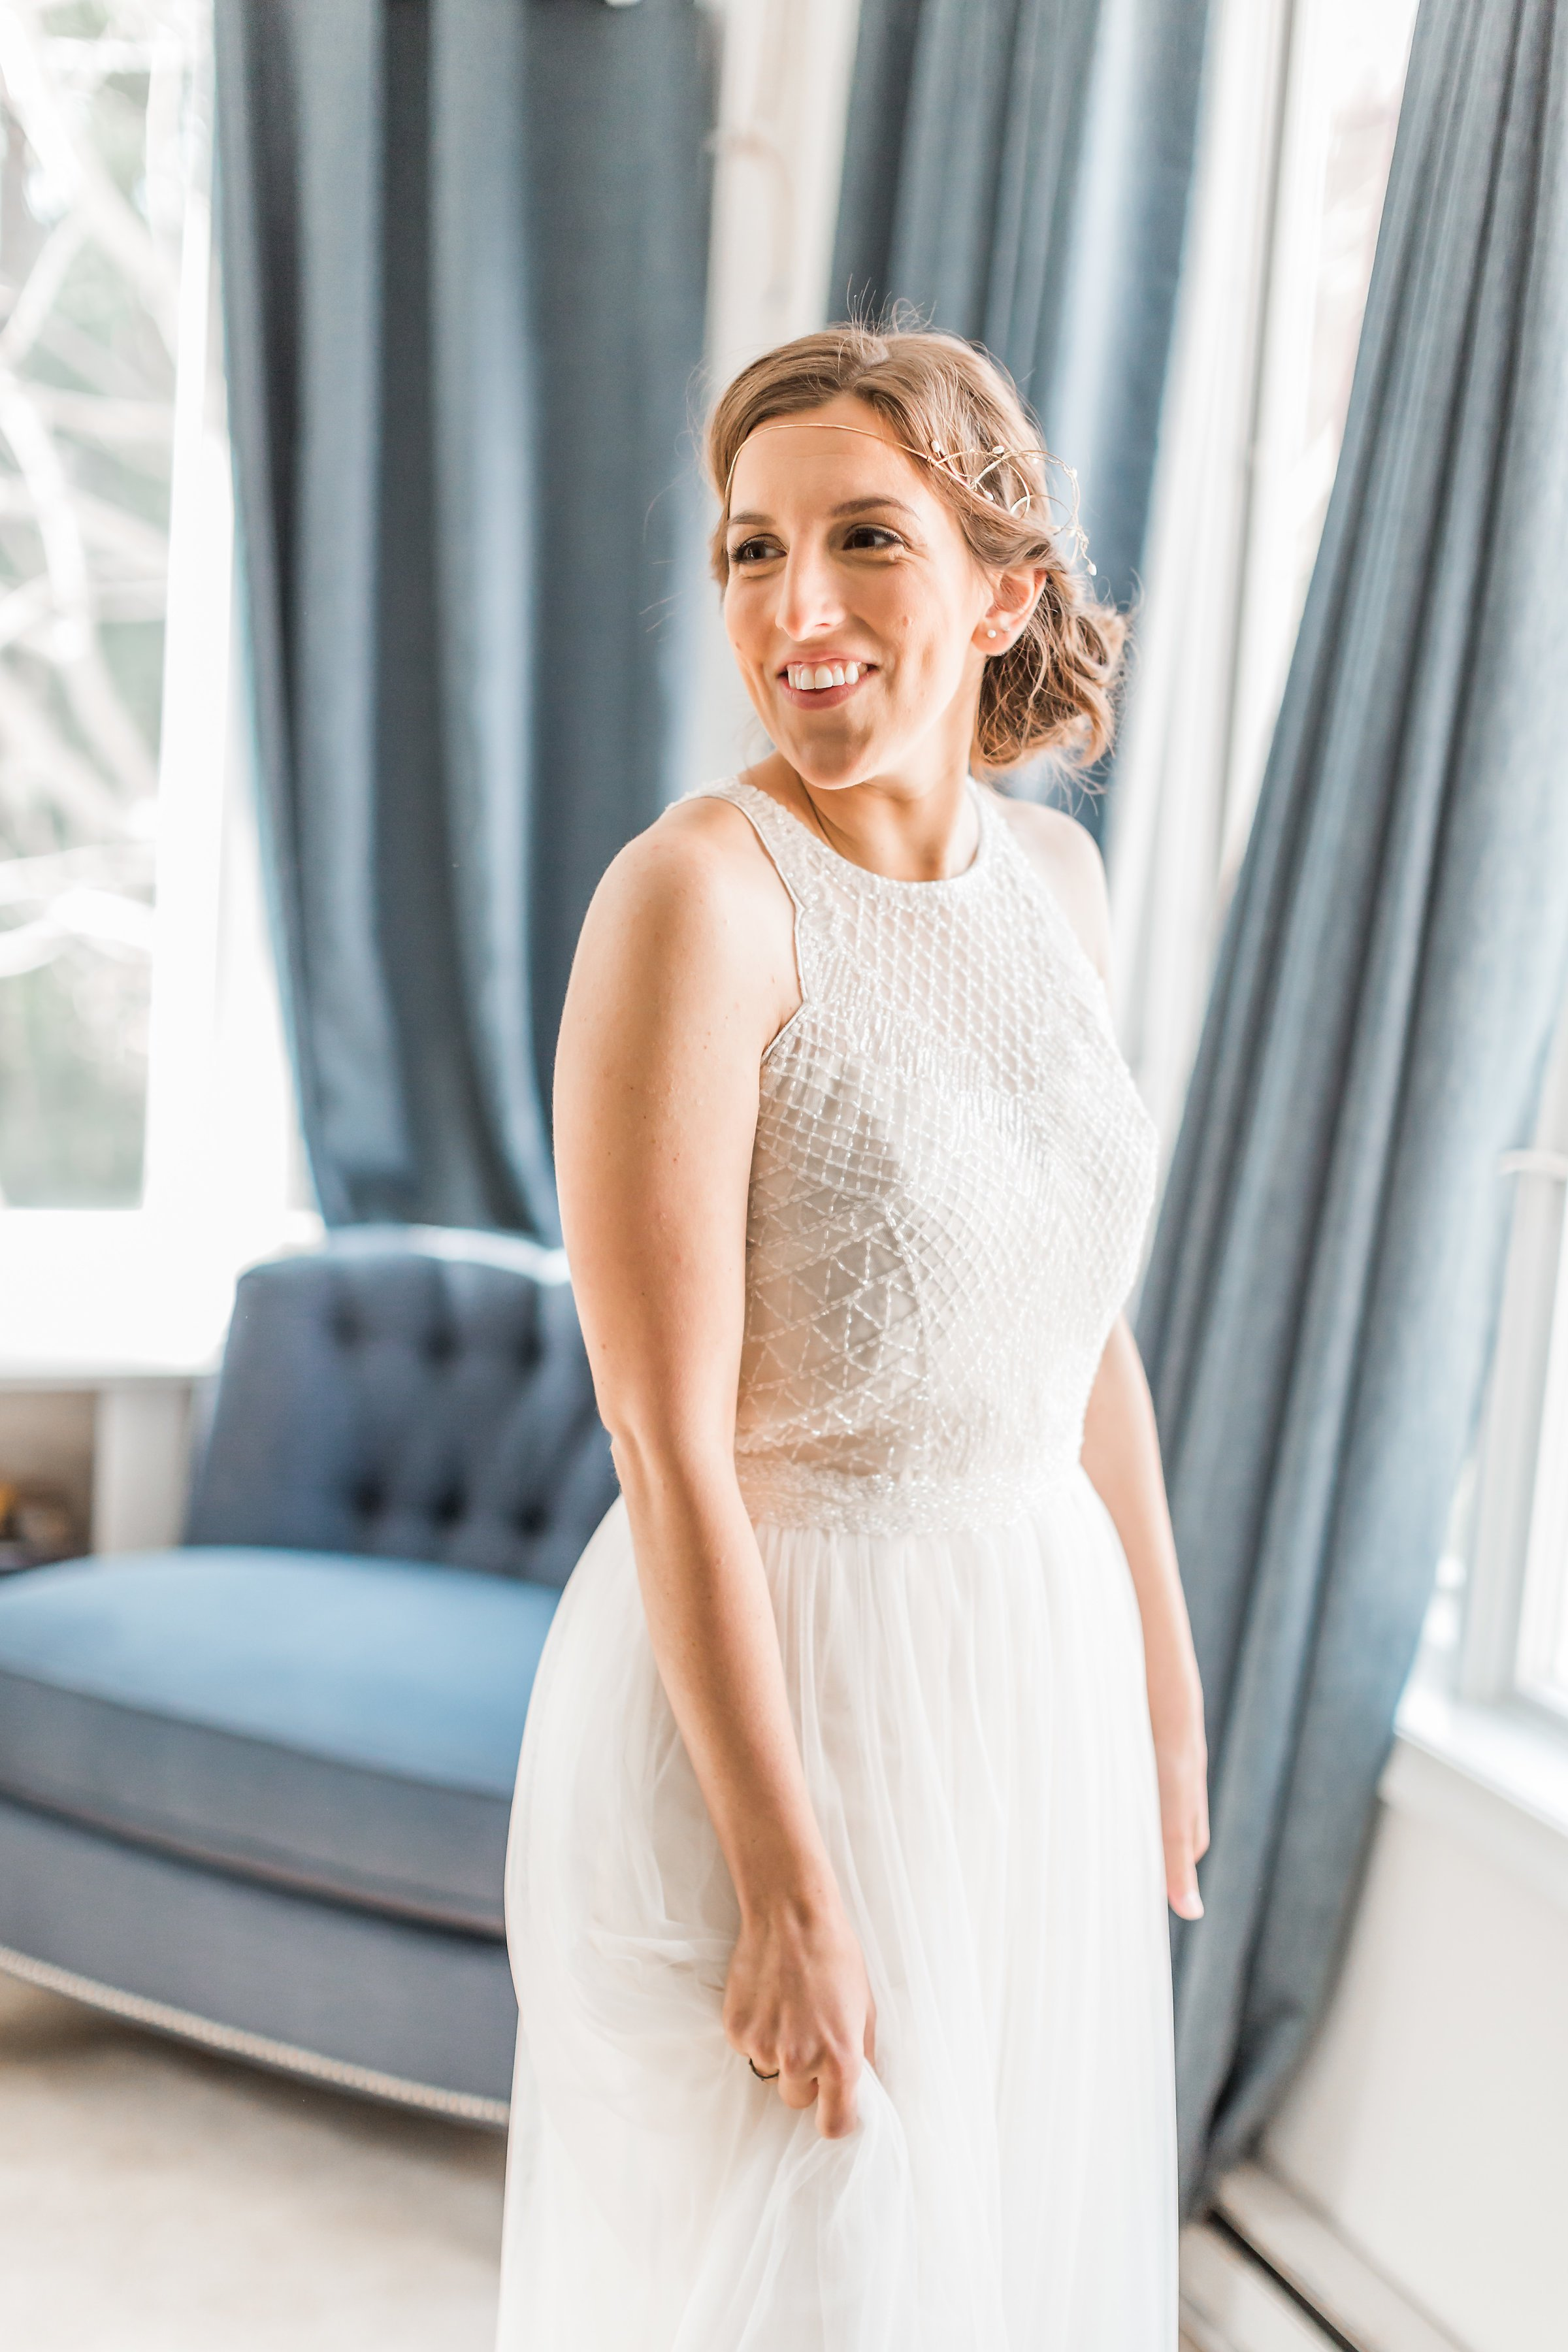 Engaged in December, Married in March: Melissa and Bogdan's Late Winter Wedding in Old Town Alexandria images 6